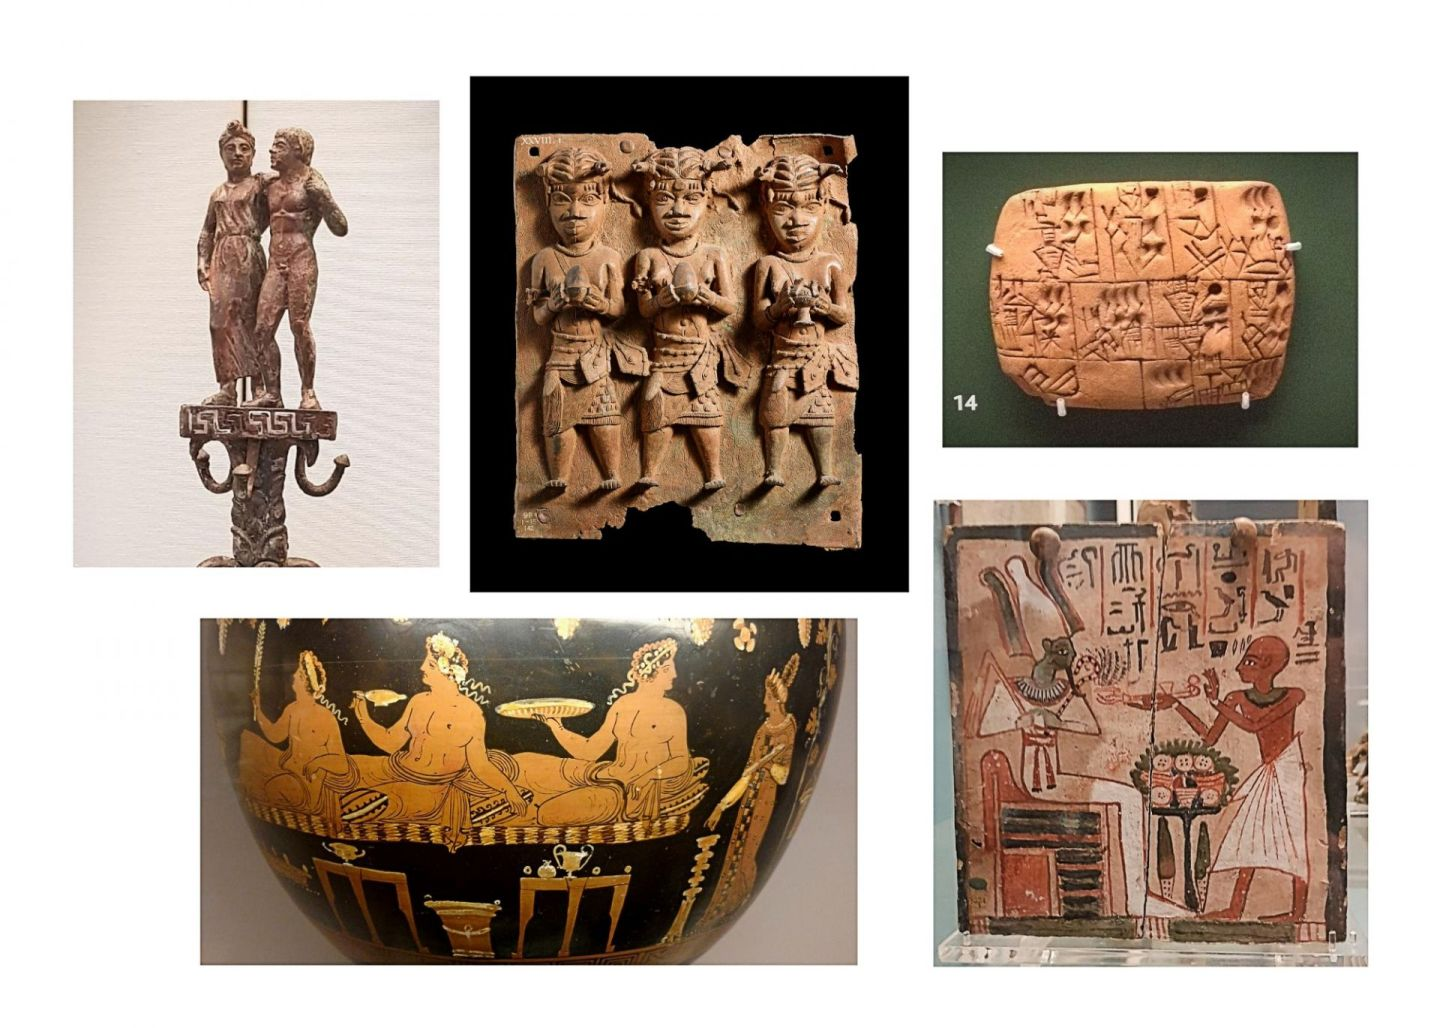 Five ancient artefacts from The British Museum, London, related to food and drink.